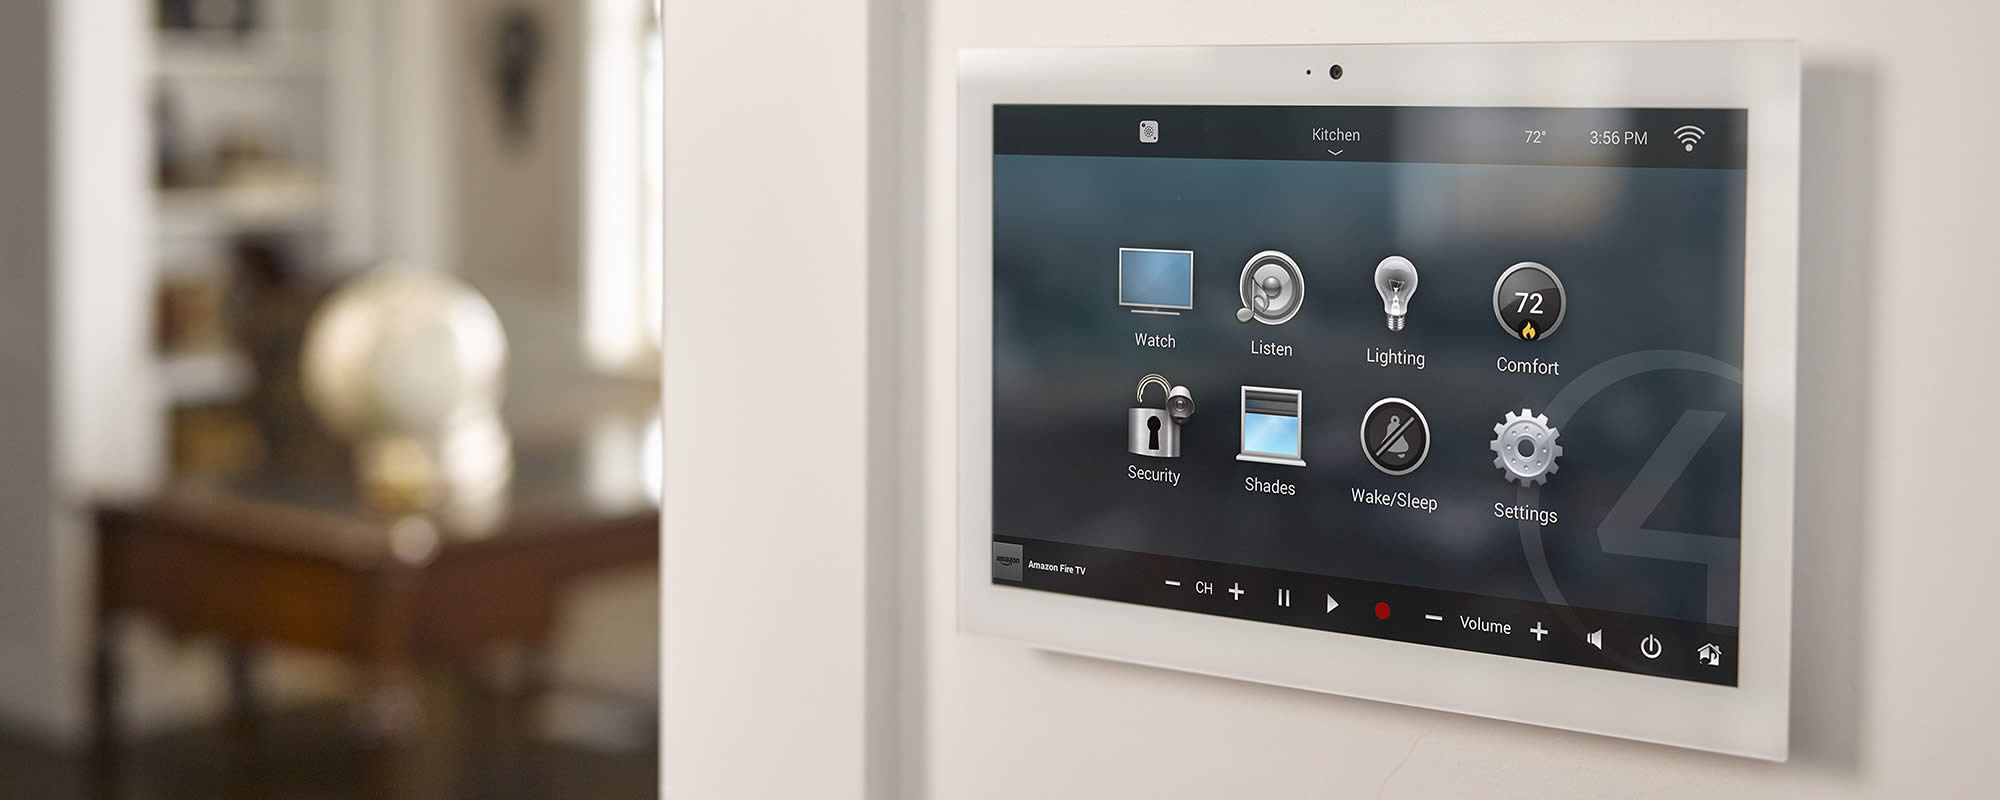 Control4, Home automation system, 97701